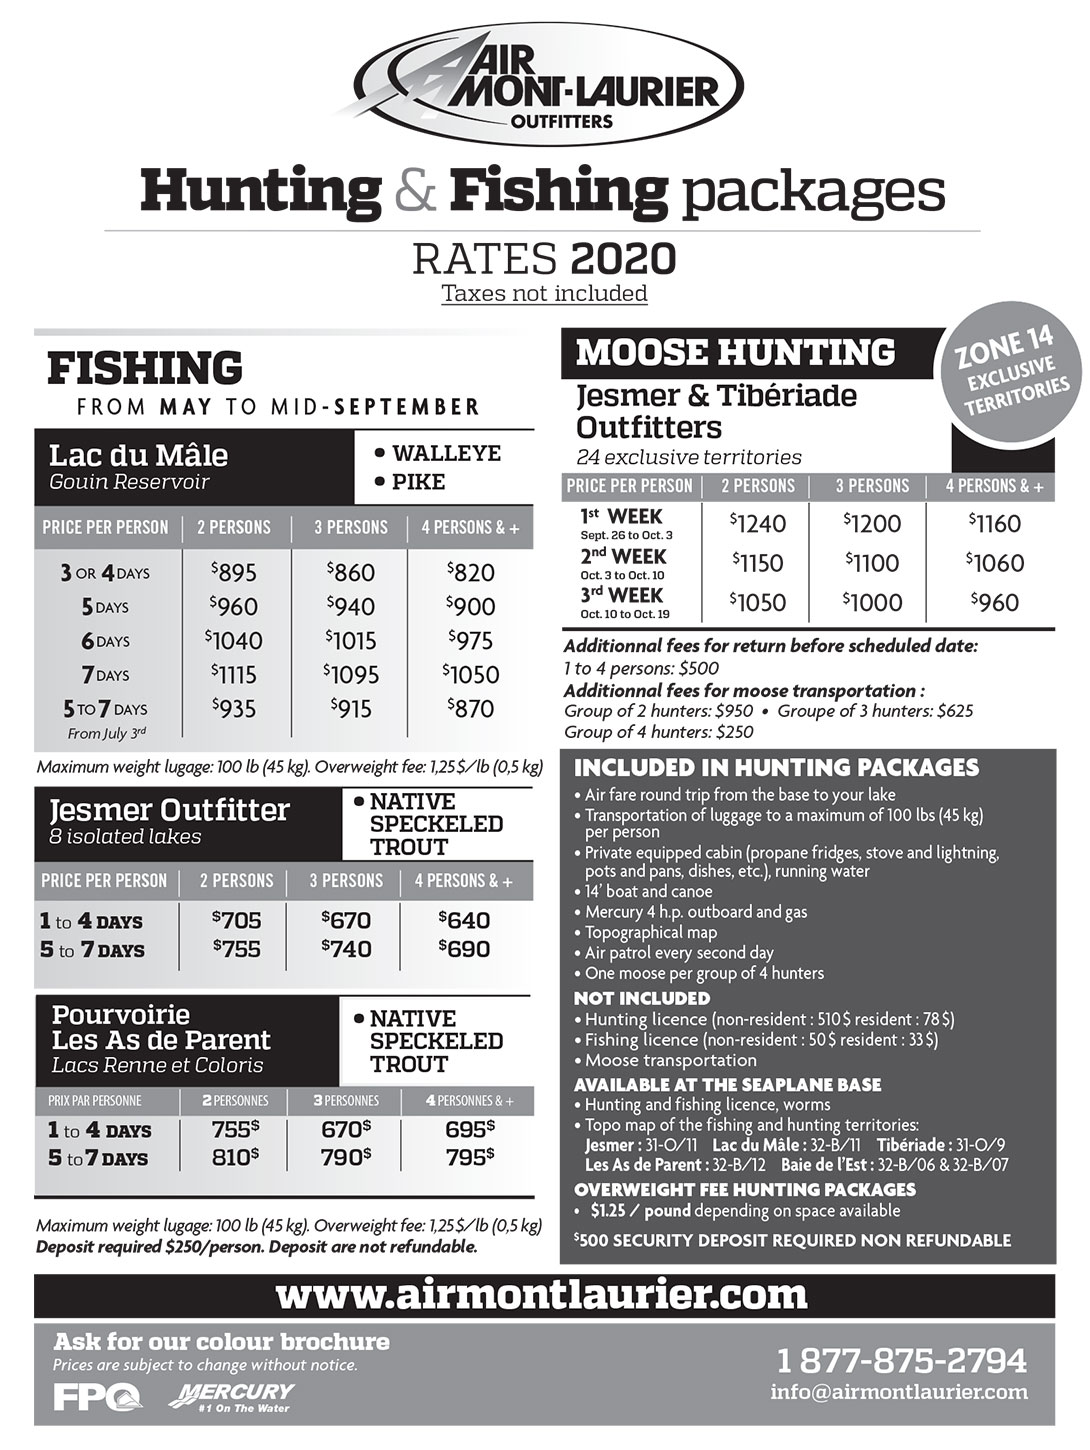 Hunting & Fishing packages - Rates-2020